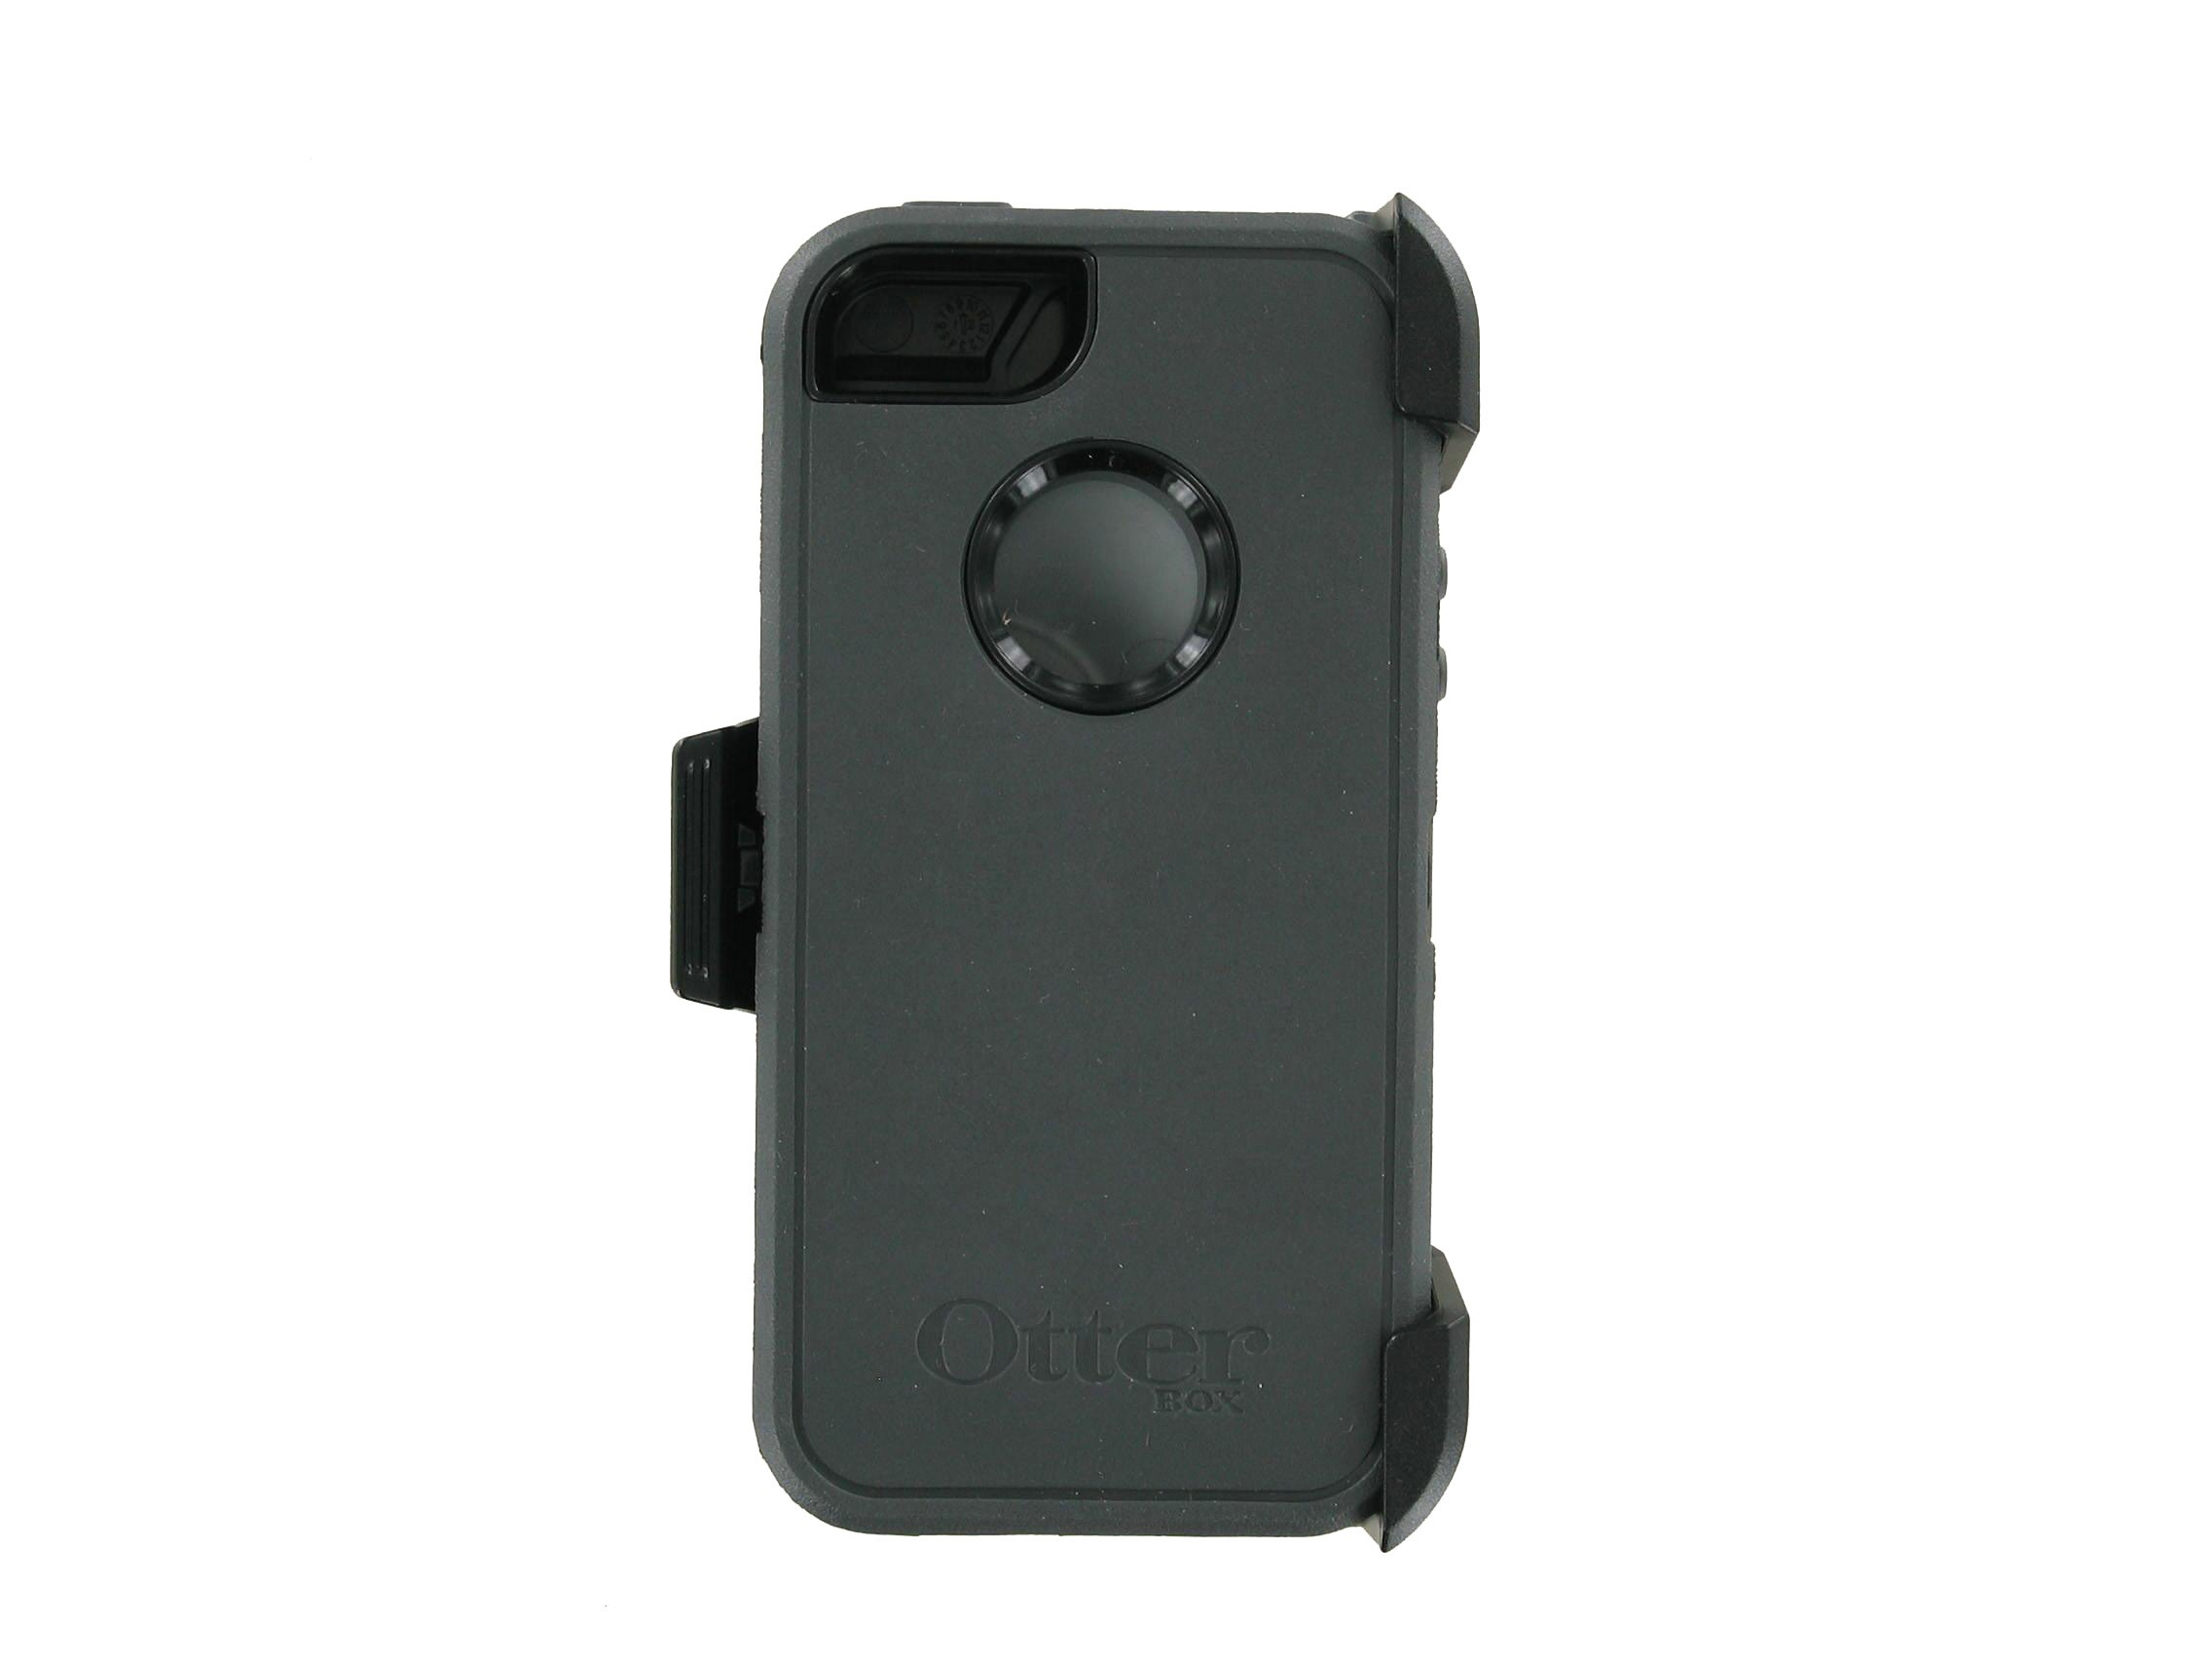 OtterBox - Defender Case for Apple iPhone 5 (Black/Gray)